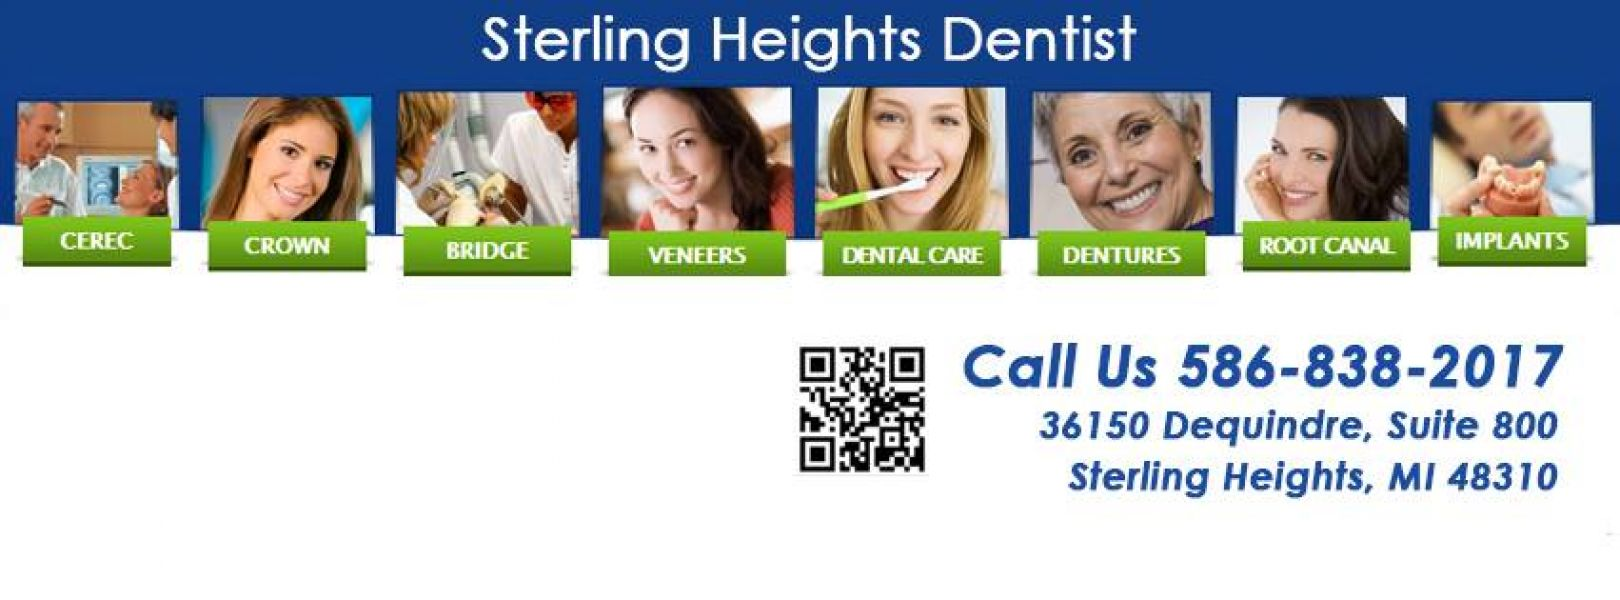 Teeth Crowns Near Sterling Heights MI